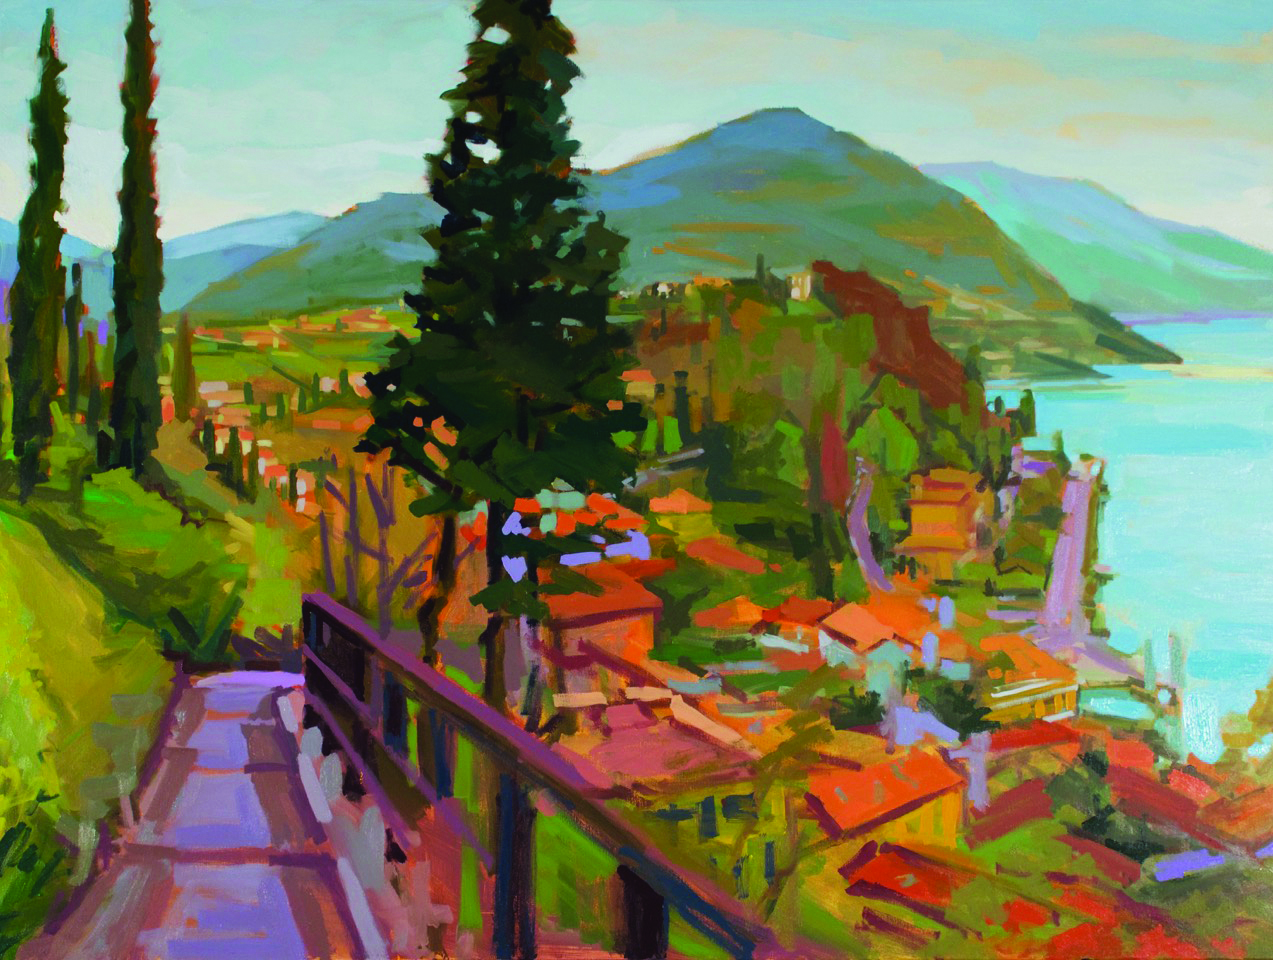 "'Bellagio Stroll'' (oil on canvas), by Nick Paciorek, in the group show ""Land, Sea,  Sky,'' at Art Prov Gallery, Providence, Sept. 16-Nov. 4. The gallery says the works of the artists in the show ""depict both the majesty of the natural world and its solitude through the use of shape, texture, color and light.''"